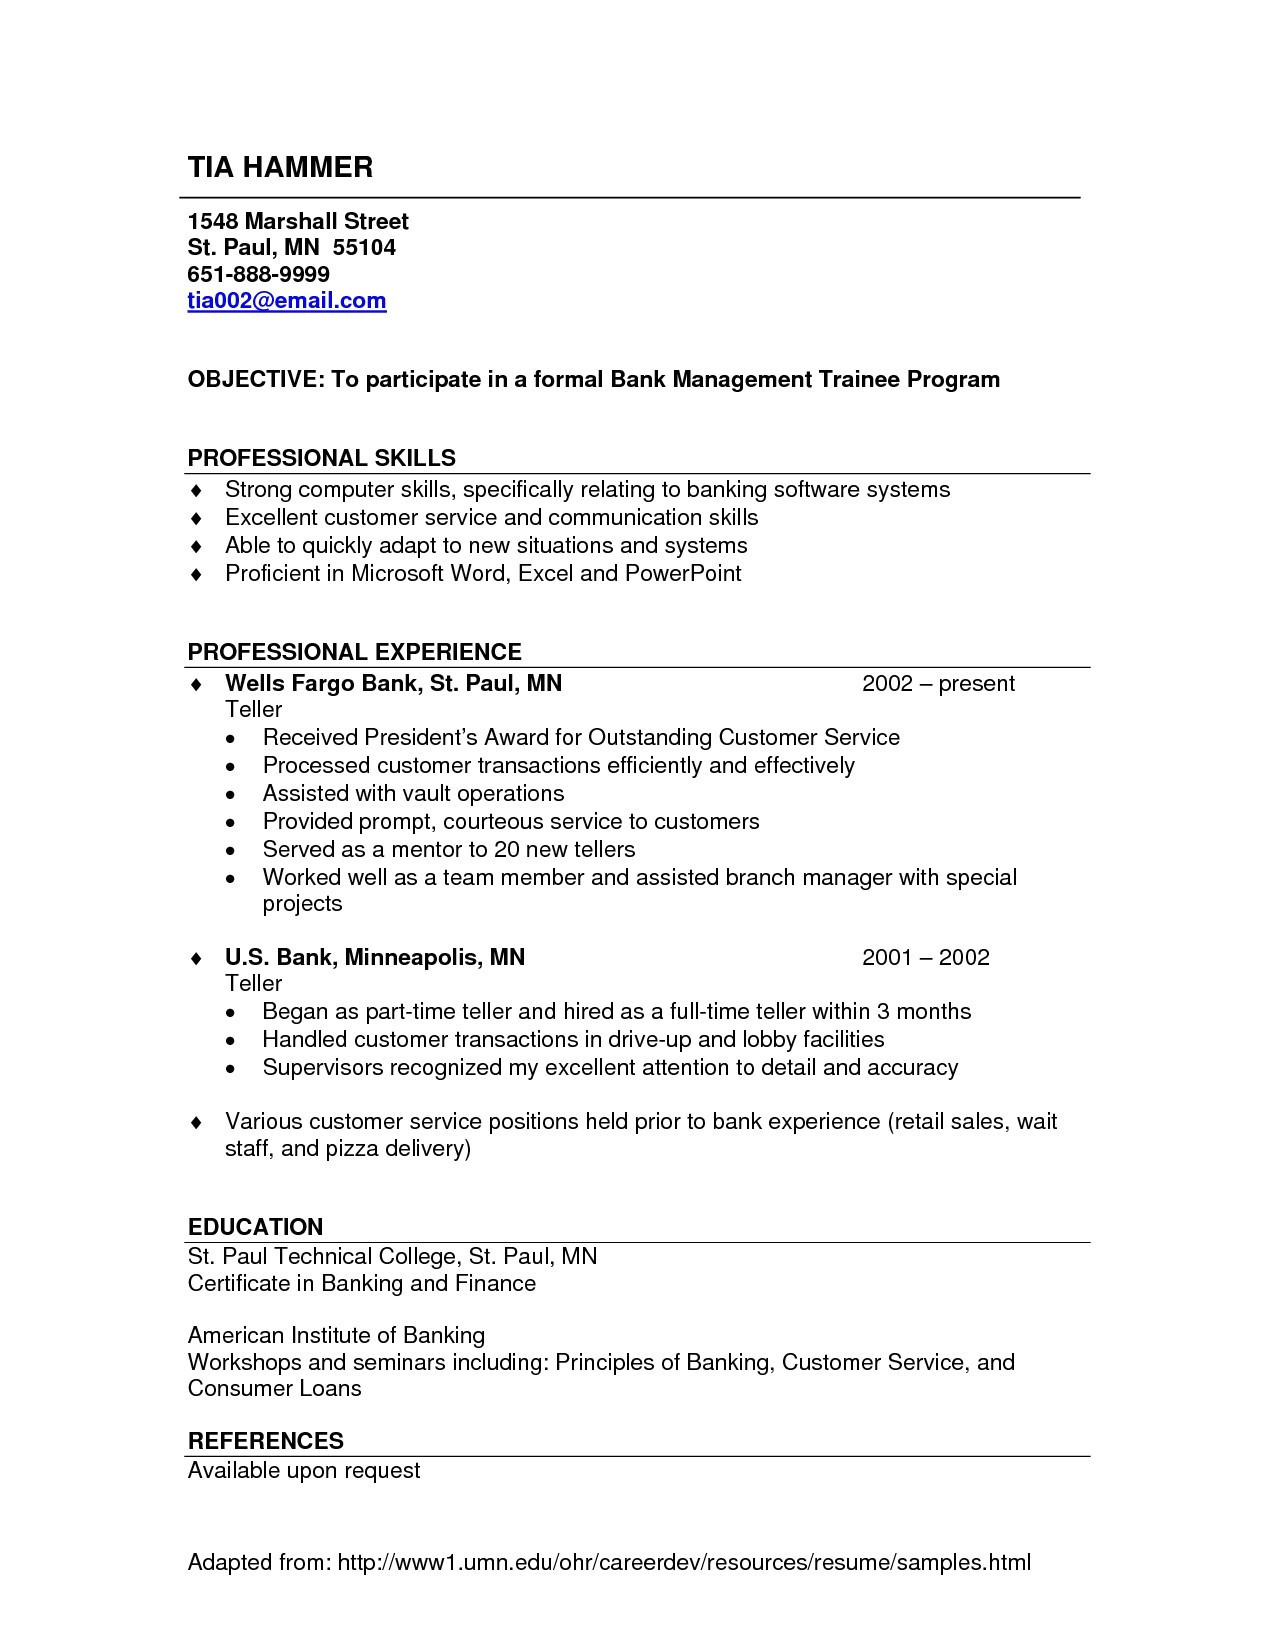 Resume References Template - Apa Resume Template New Examples A Resume Fresh Resume Examples 0d